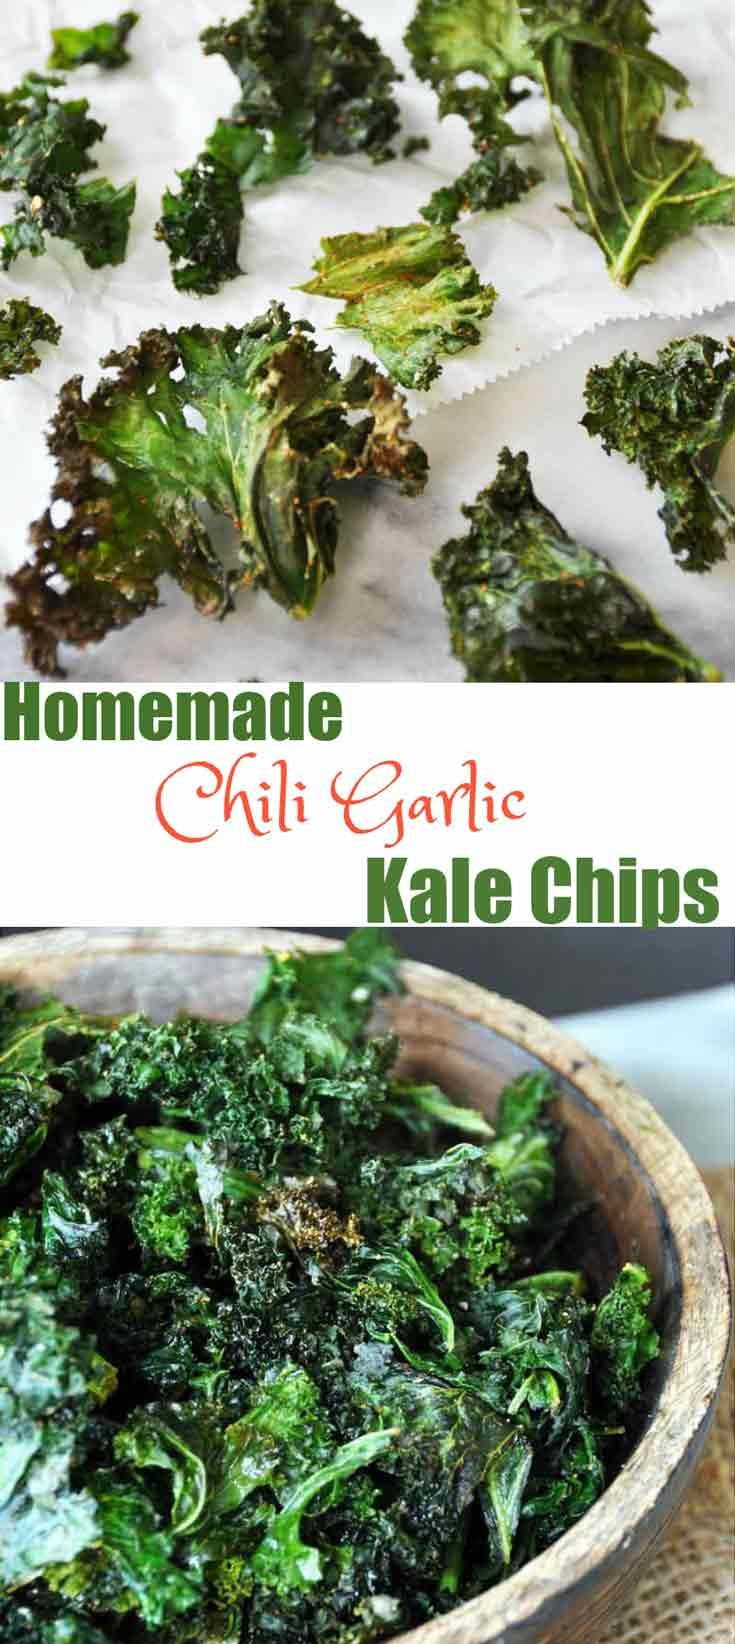 Make your own spicy kale chips at home. Find out how at www.veganosity.com